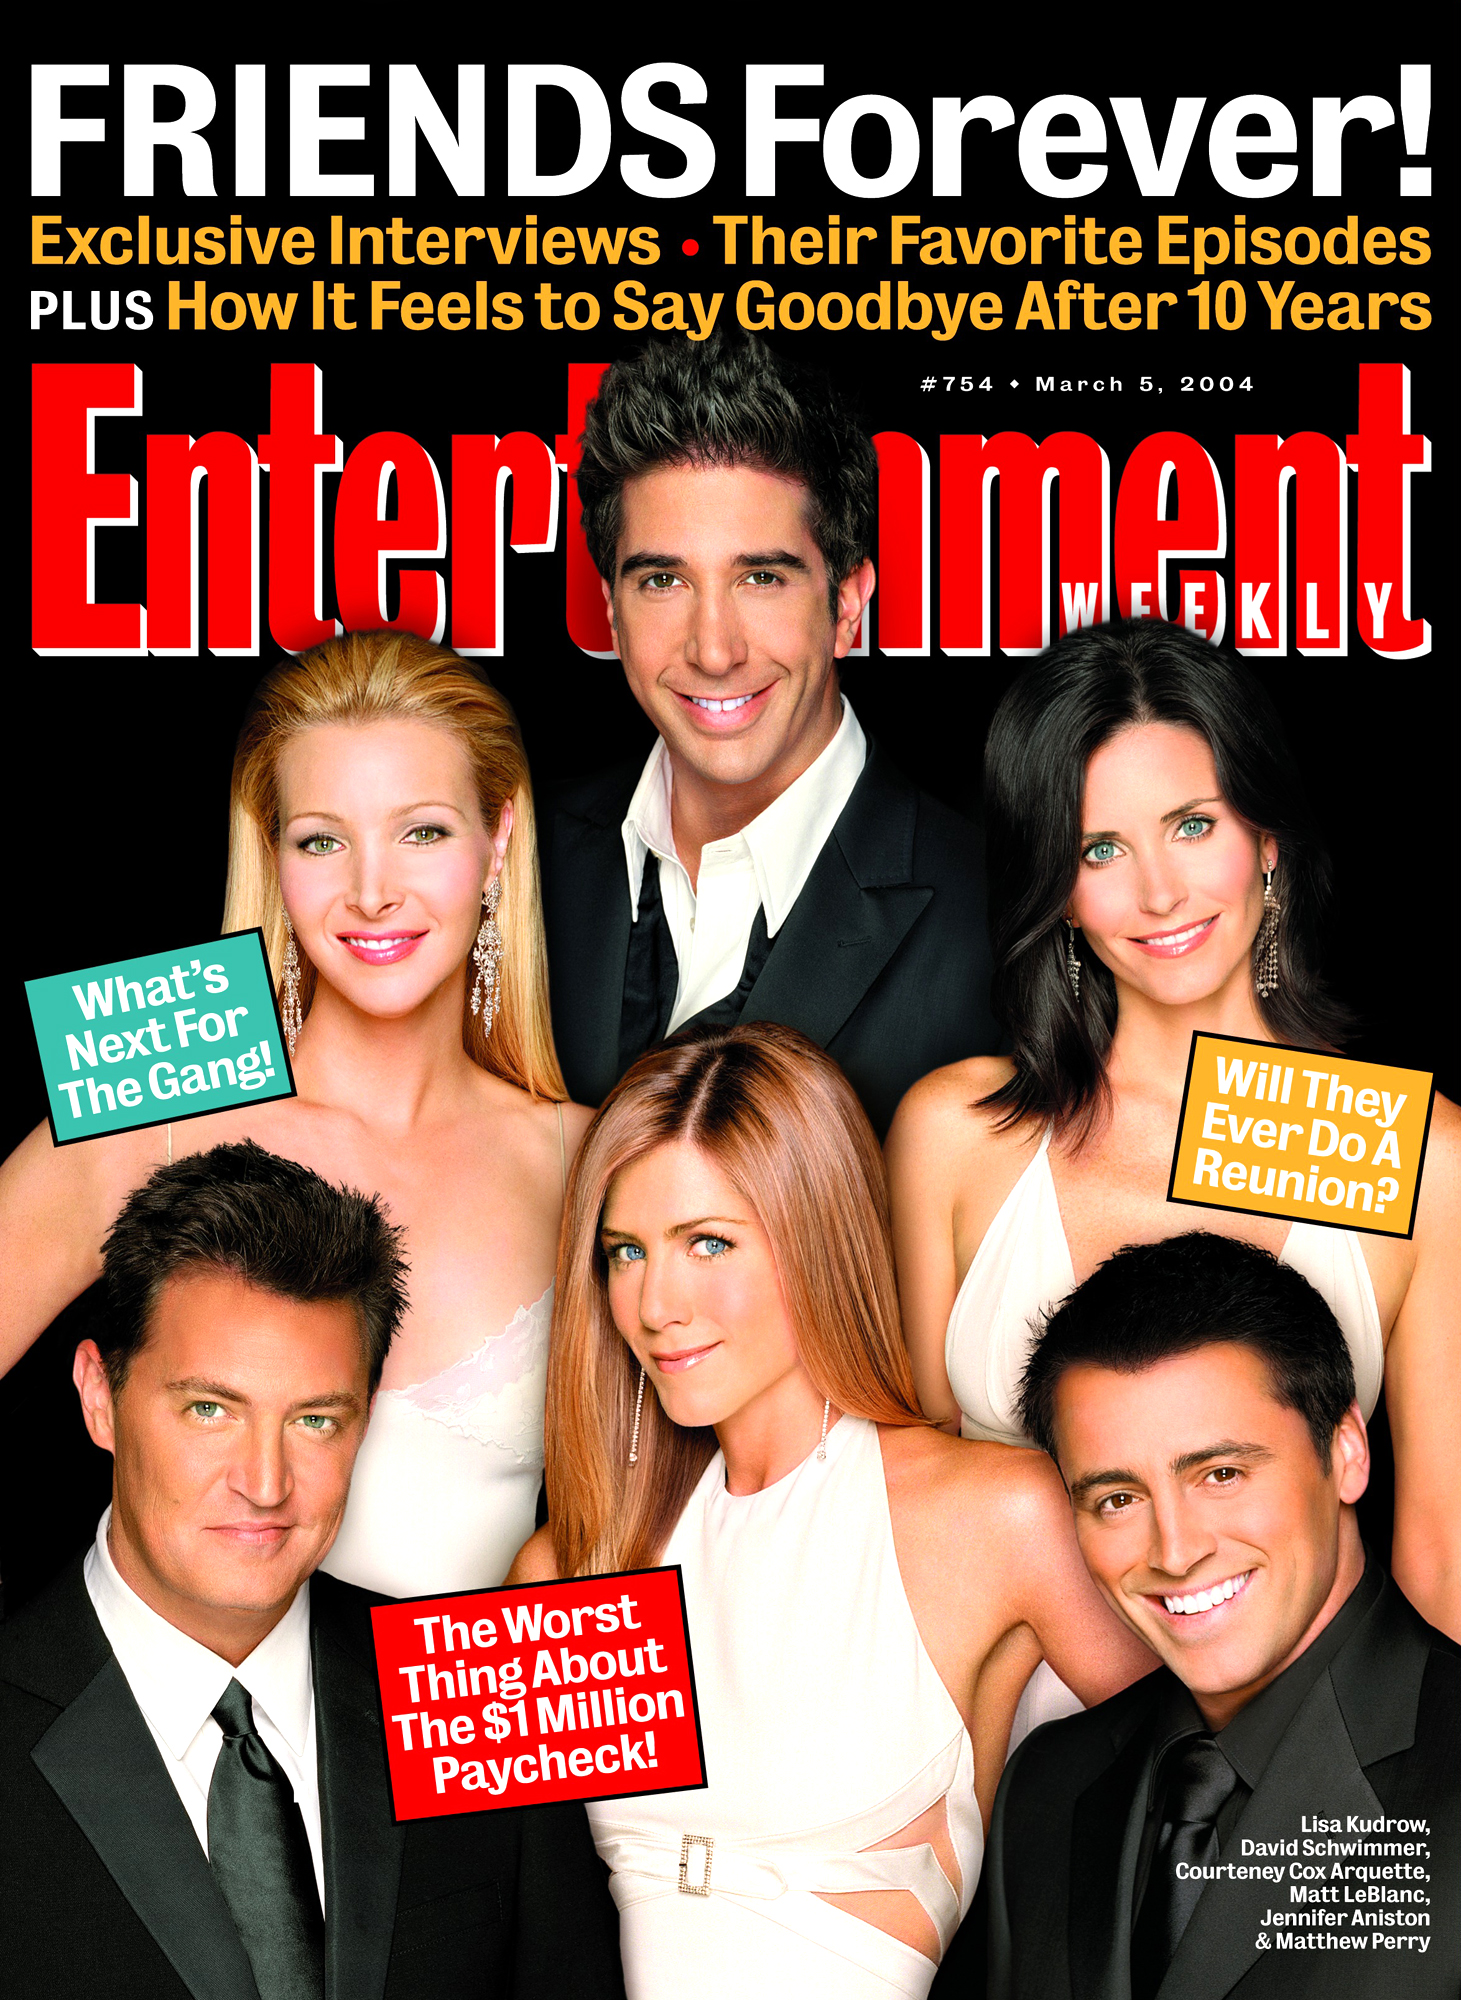 Entertainment Weekly coverIssue# 754 - 5/5/2004Friends